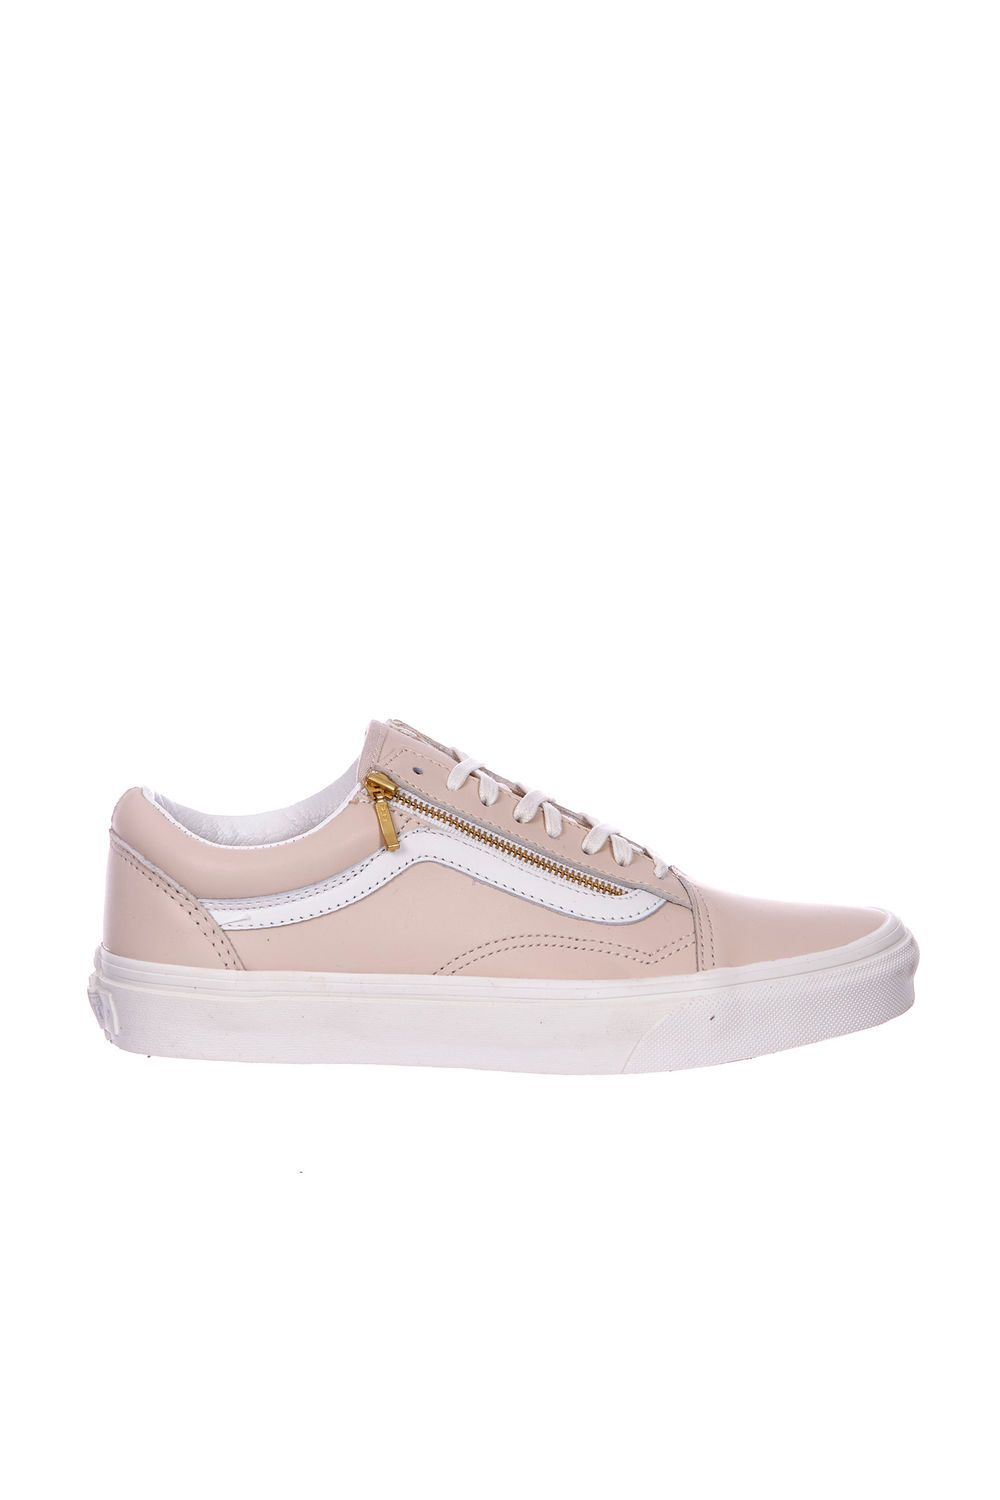 Vans Old Skool Leather Baskets Femme